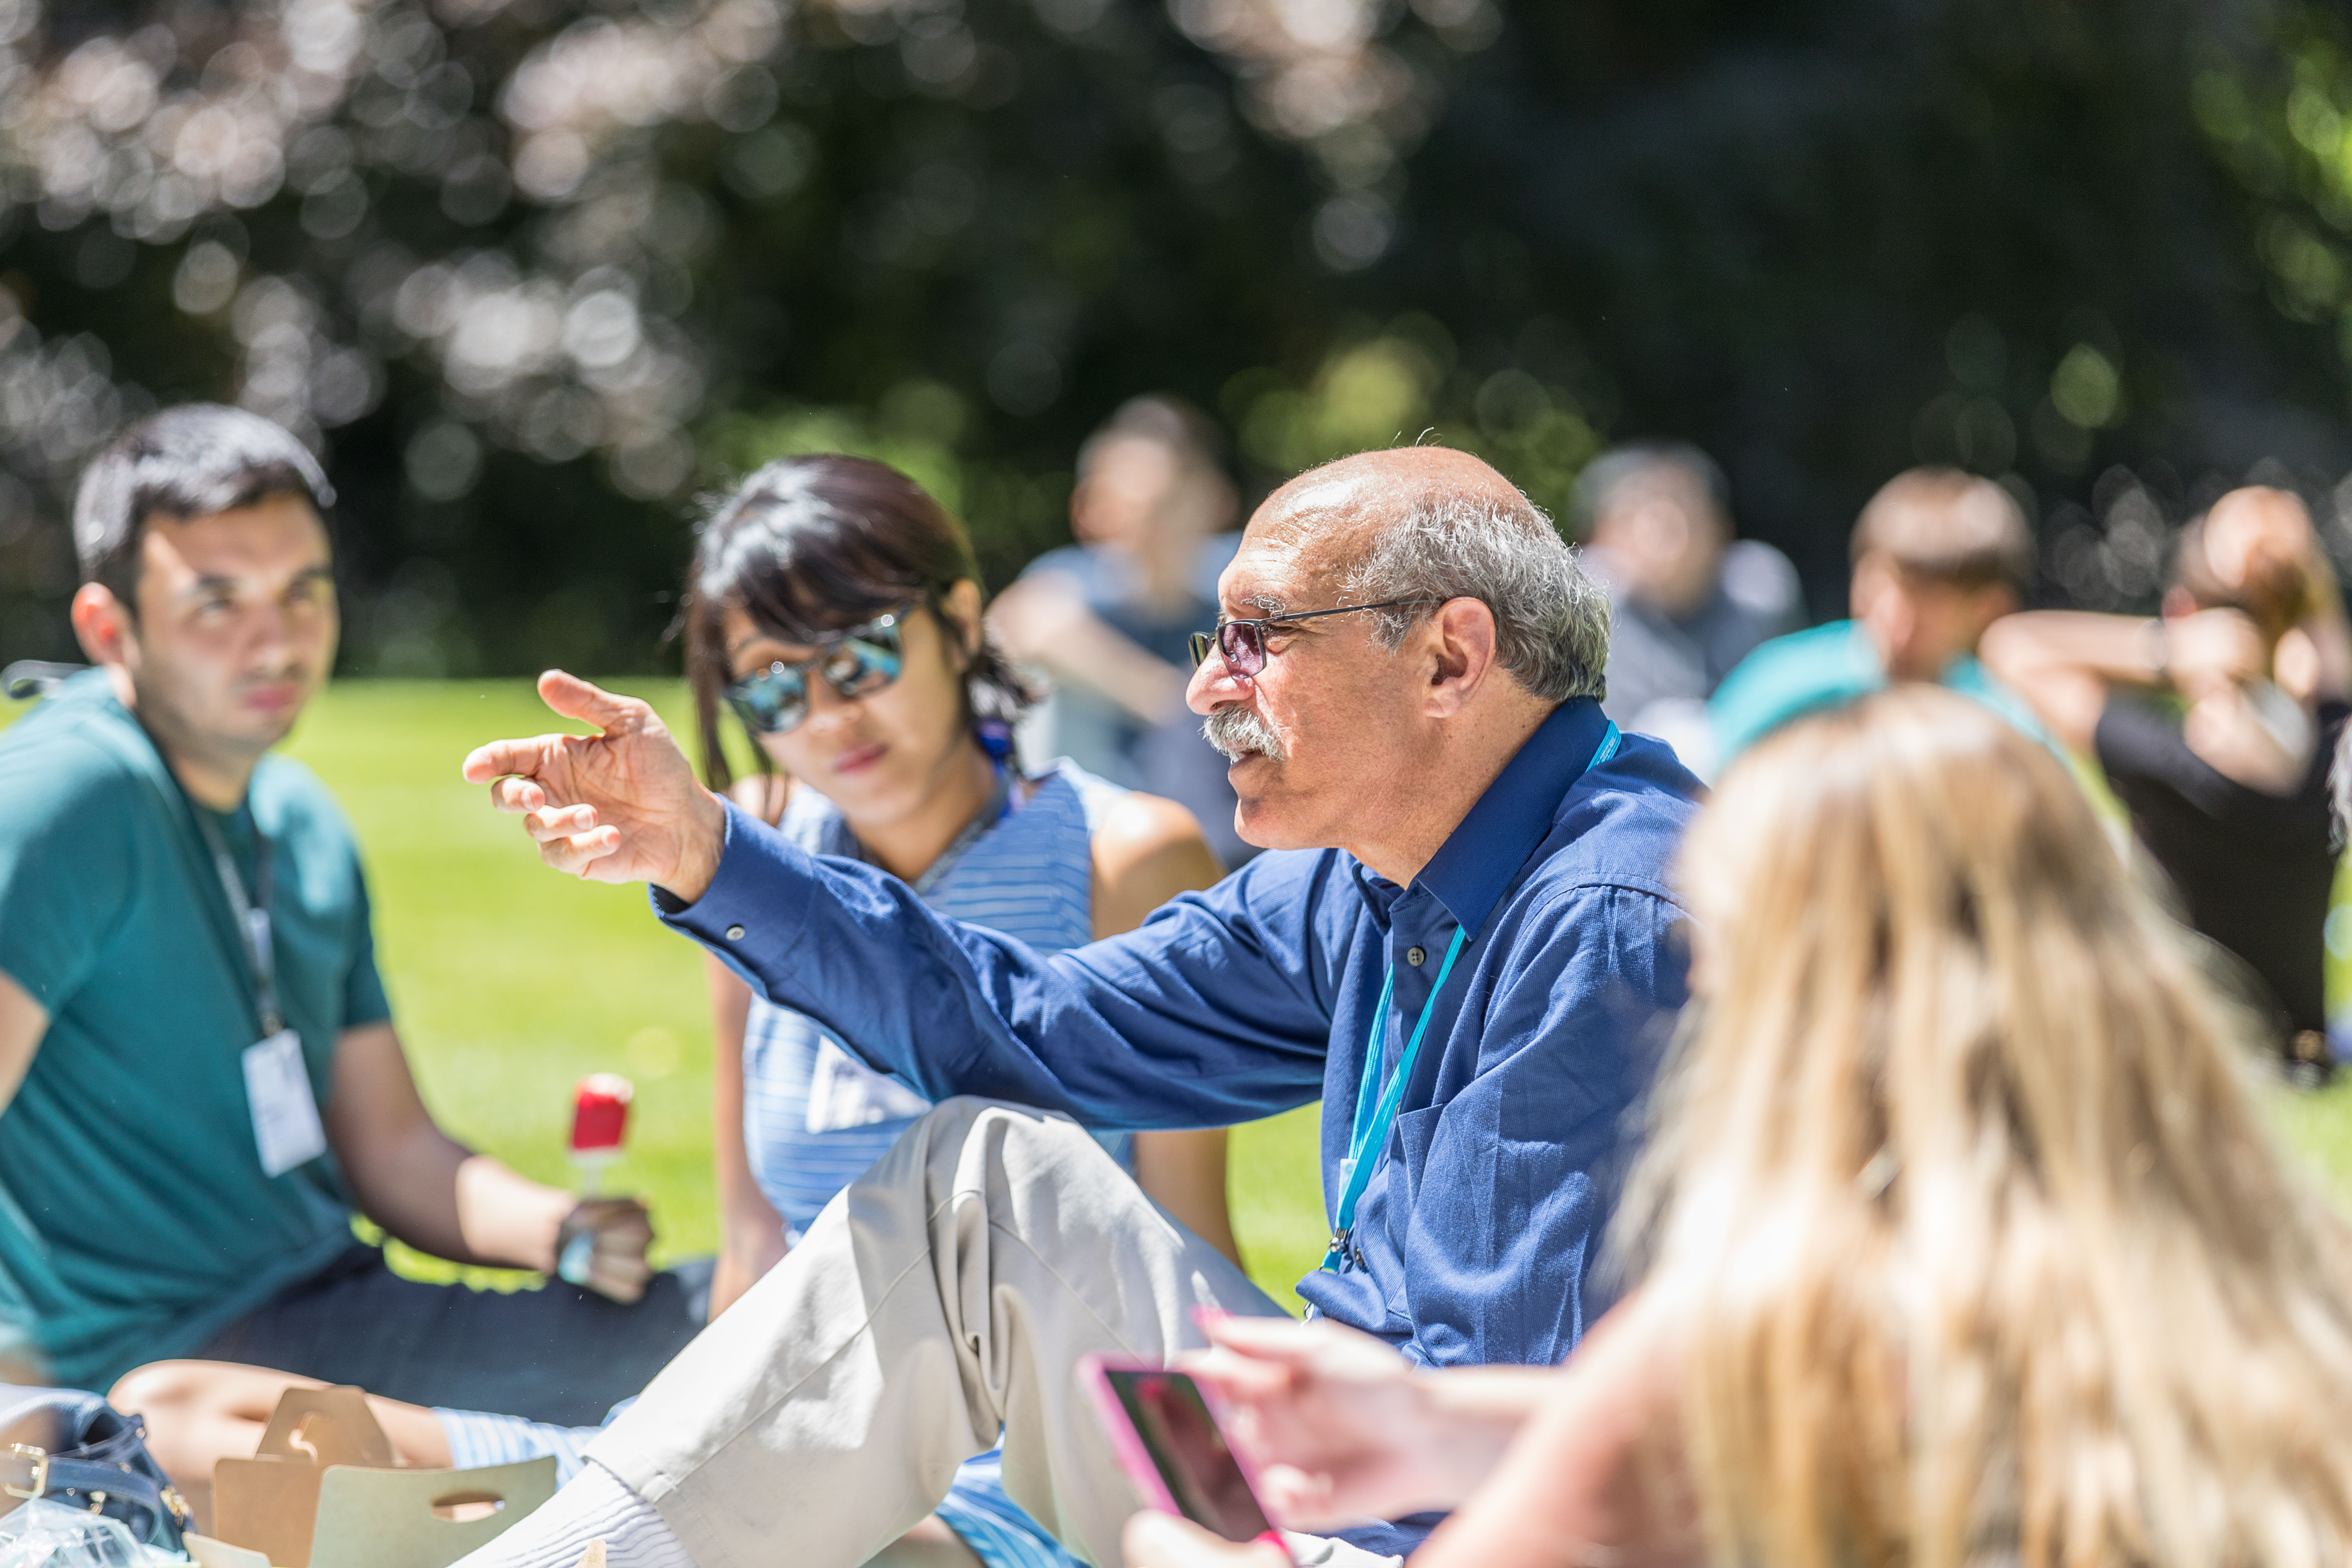 Martin Chalfie at the Science Picnic with young scientists during the 67th Lindau Nobel Laureate Meeting, Picture/Credit: Christian Flemming/Lindau Nobel Laureate Meetings